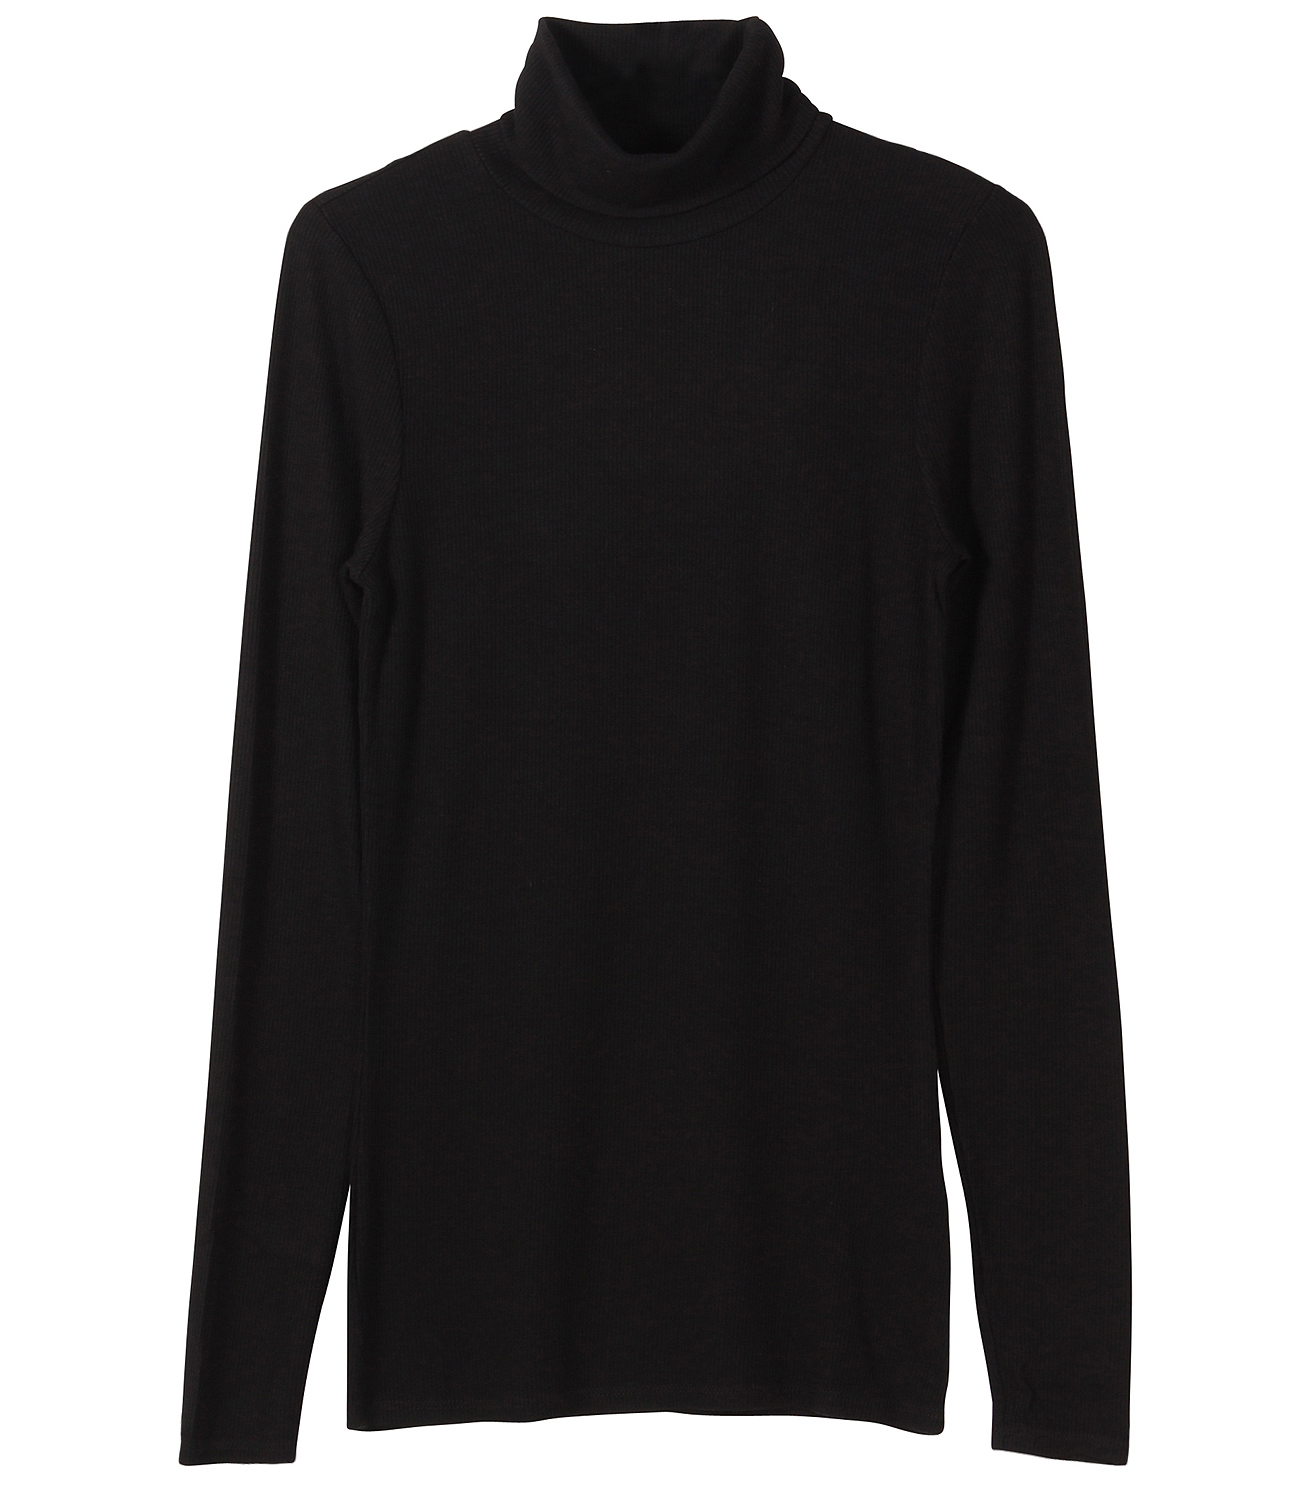 2×1 viscose l/s turtleneck 詳細画像 black 1